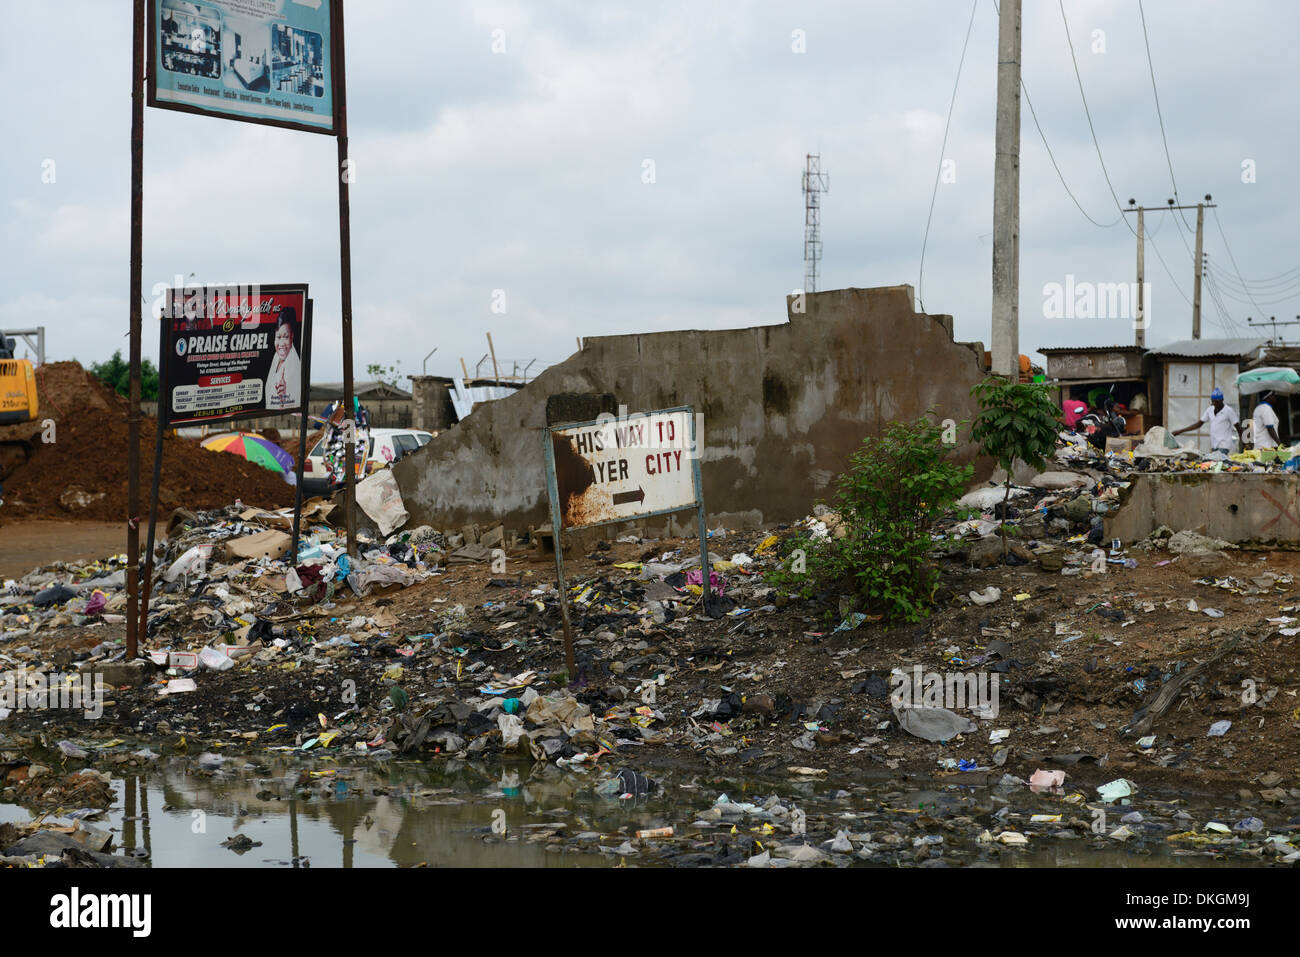 sign signage entrance filth strewn rubbish prayer city ibadan highway lagos nigeria slum slums - Stock Image